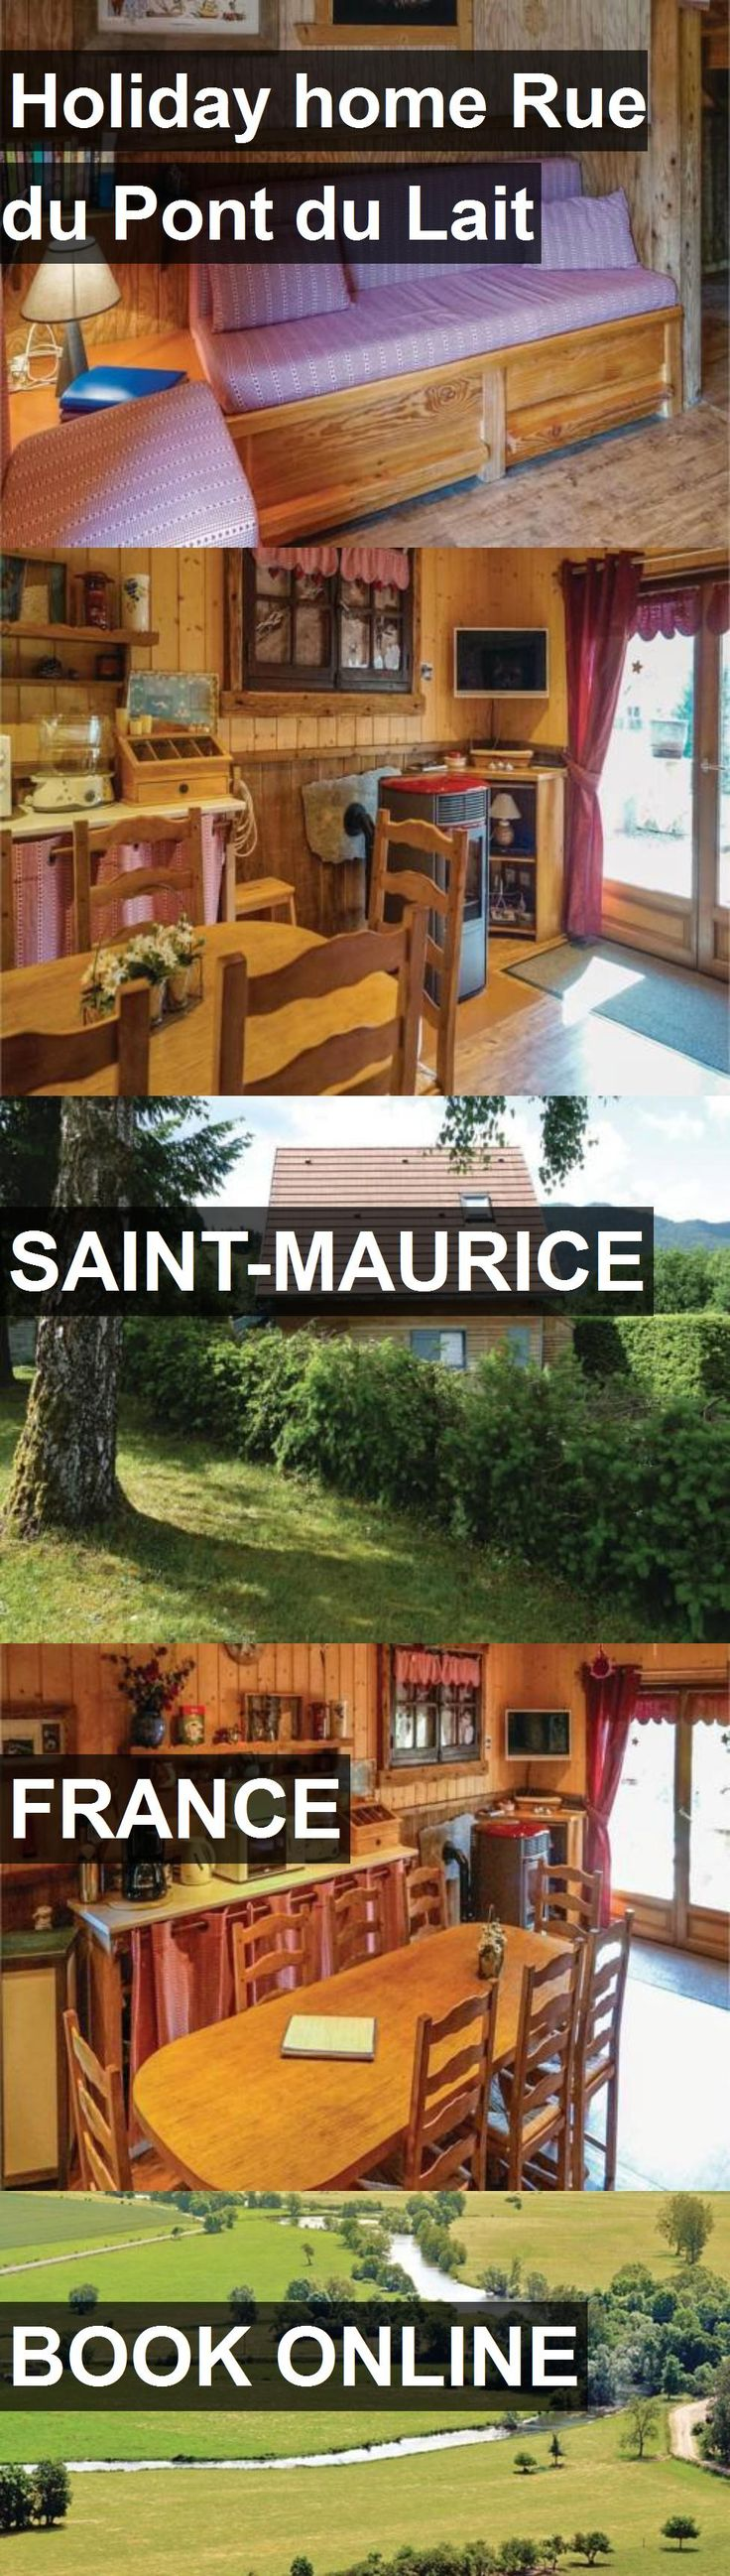 Hotel Holiday home Rue du Pont du Lait in Saint-Maurice, France. For more information, photos, reviews and best prices please follow the link. #France #Saint-Maurice #travel #vacation #hotel